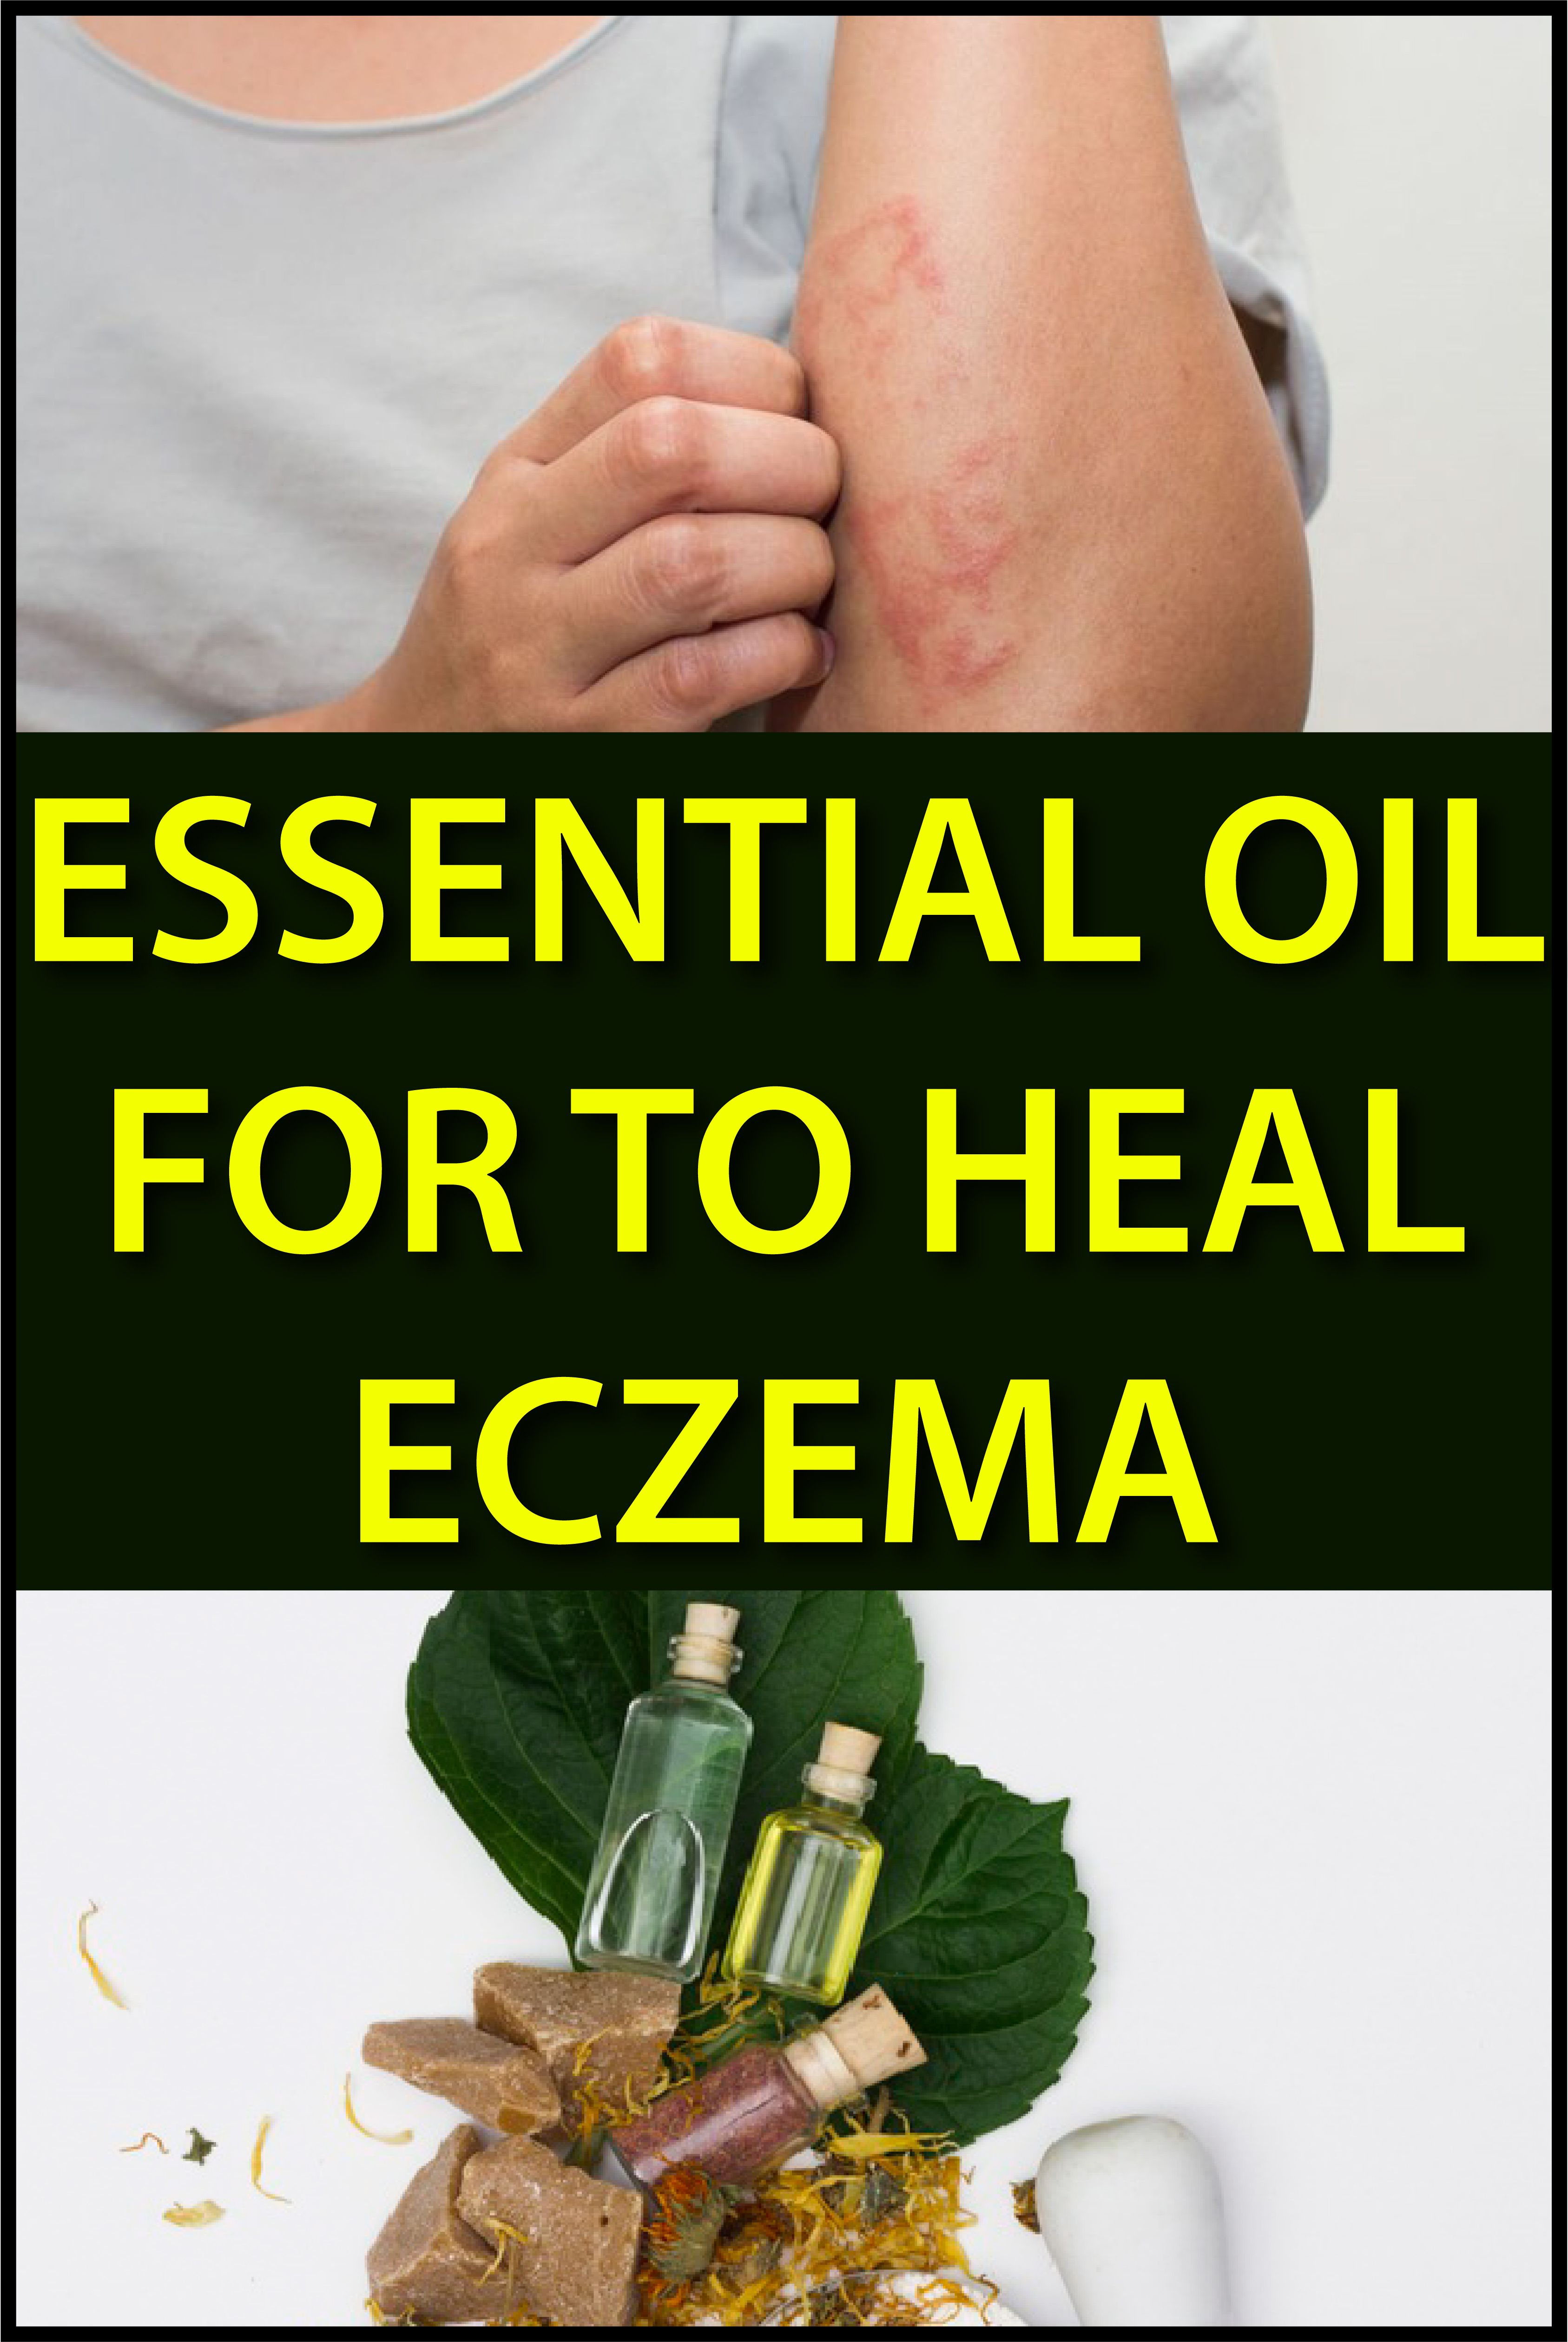 Essential Oil for to Heal Eczema